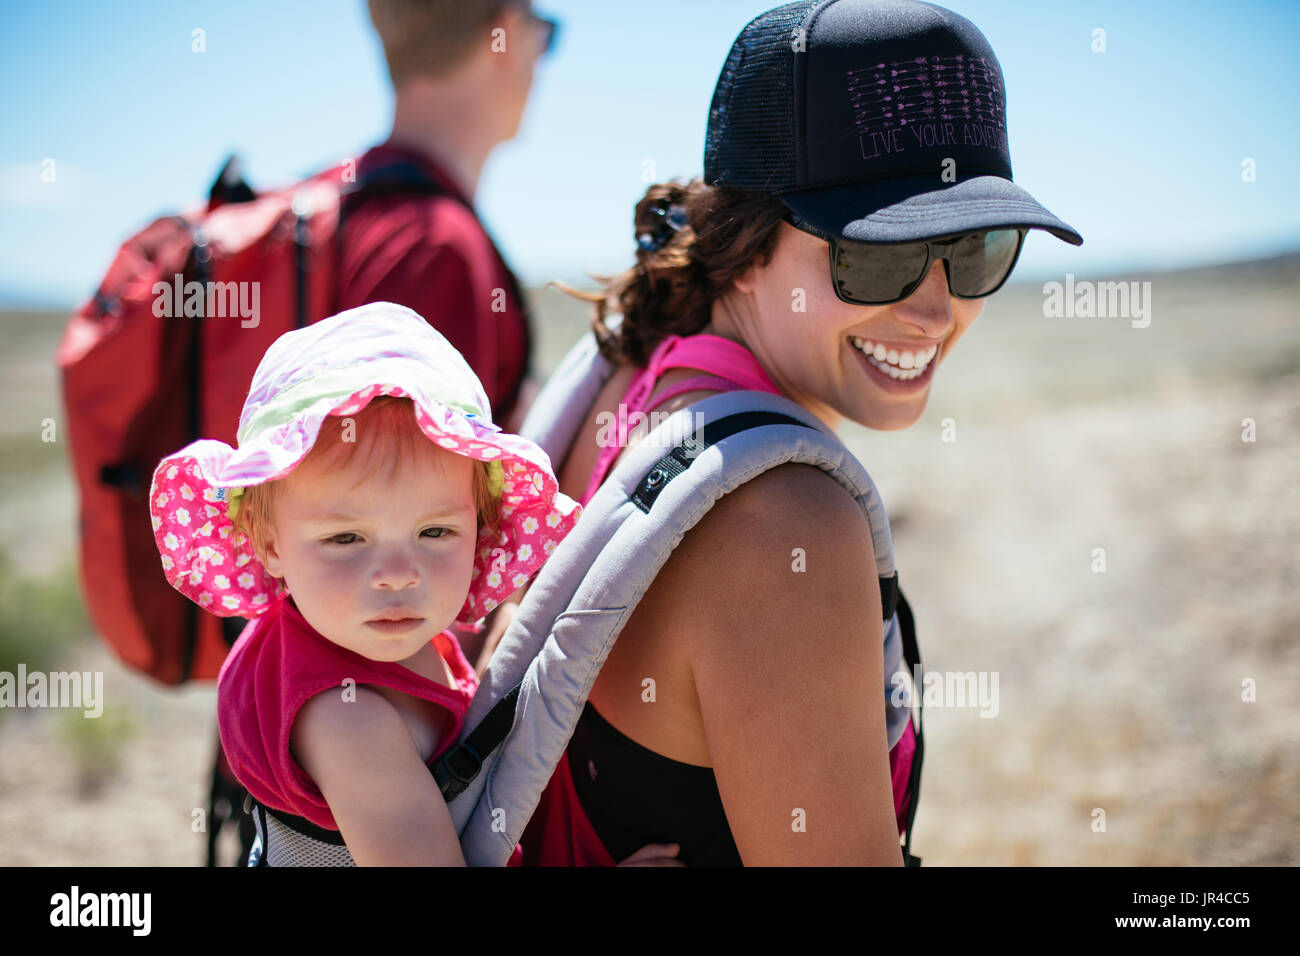 Mother, father, and toddler on a fun desert hike - Stock Image